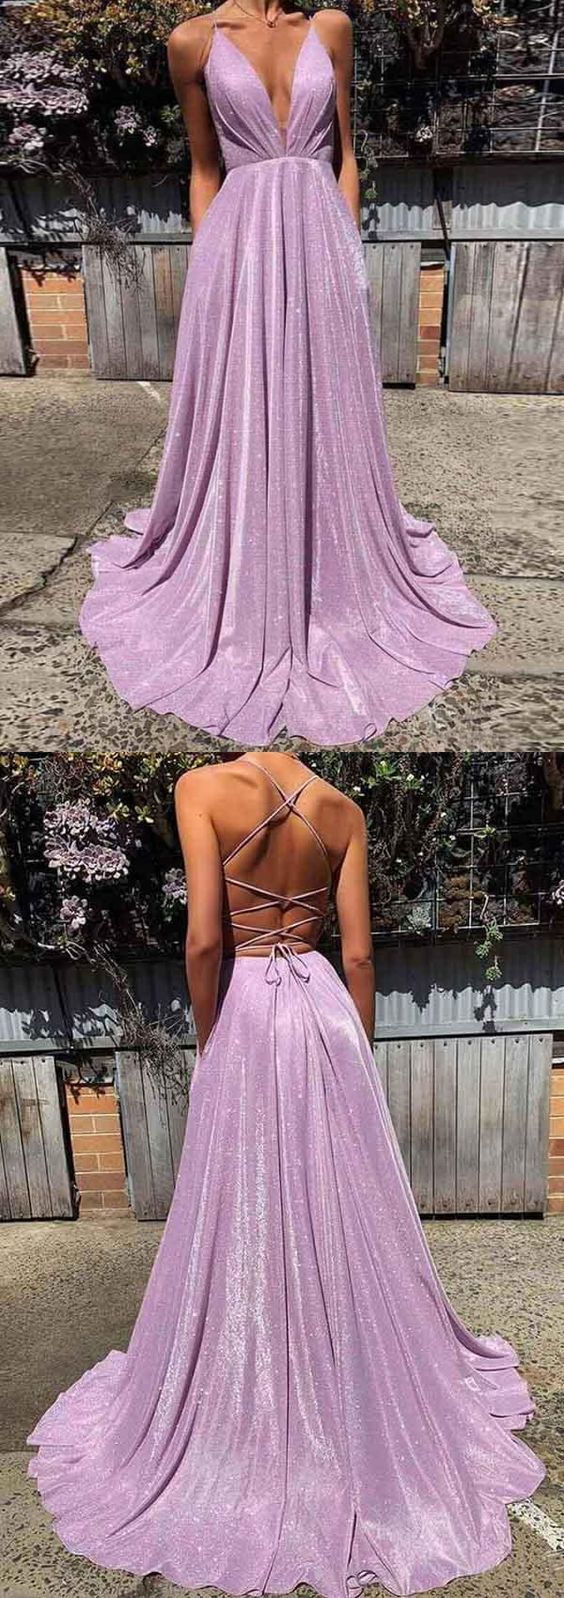 open back simple cheap sparkly lilac dress ML253